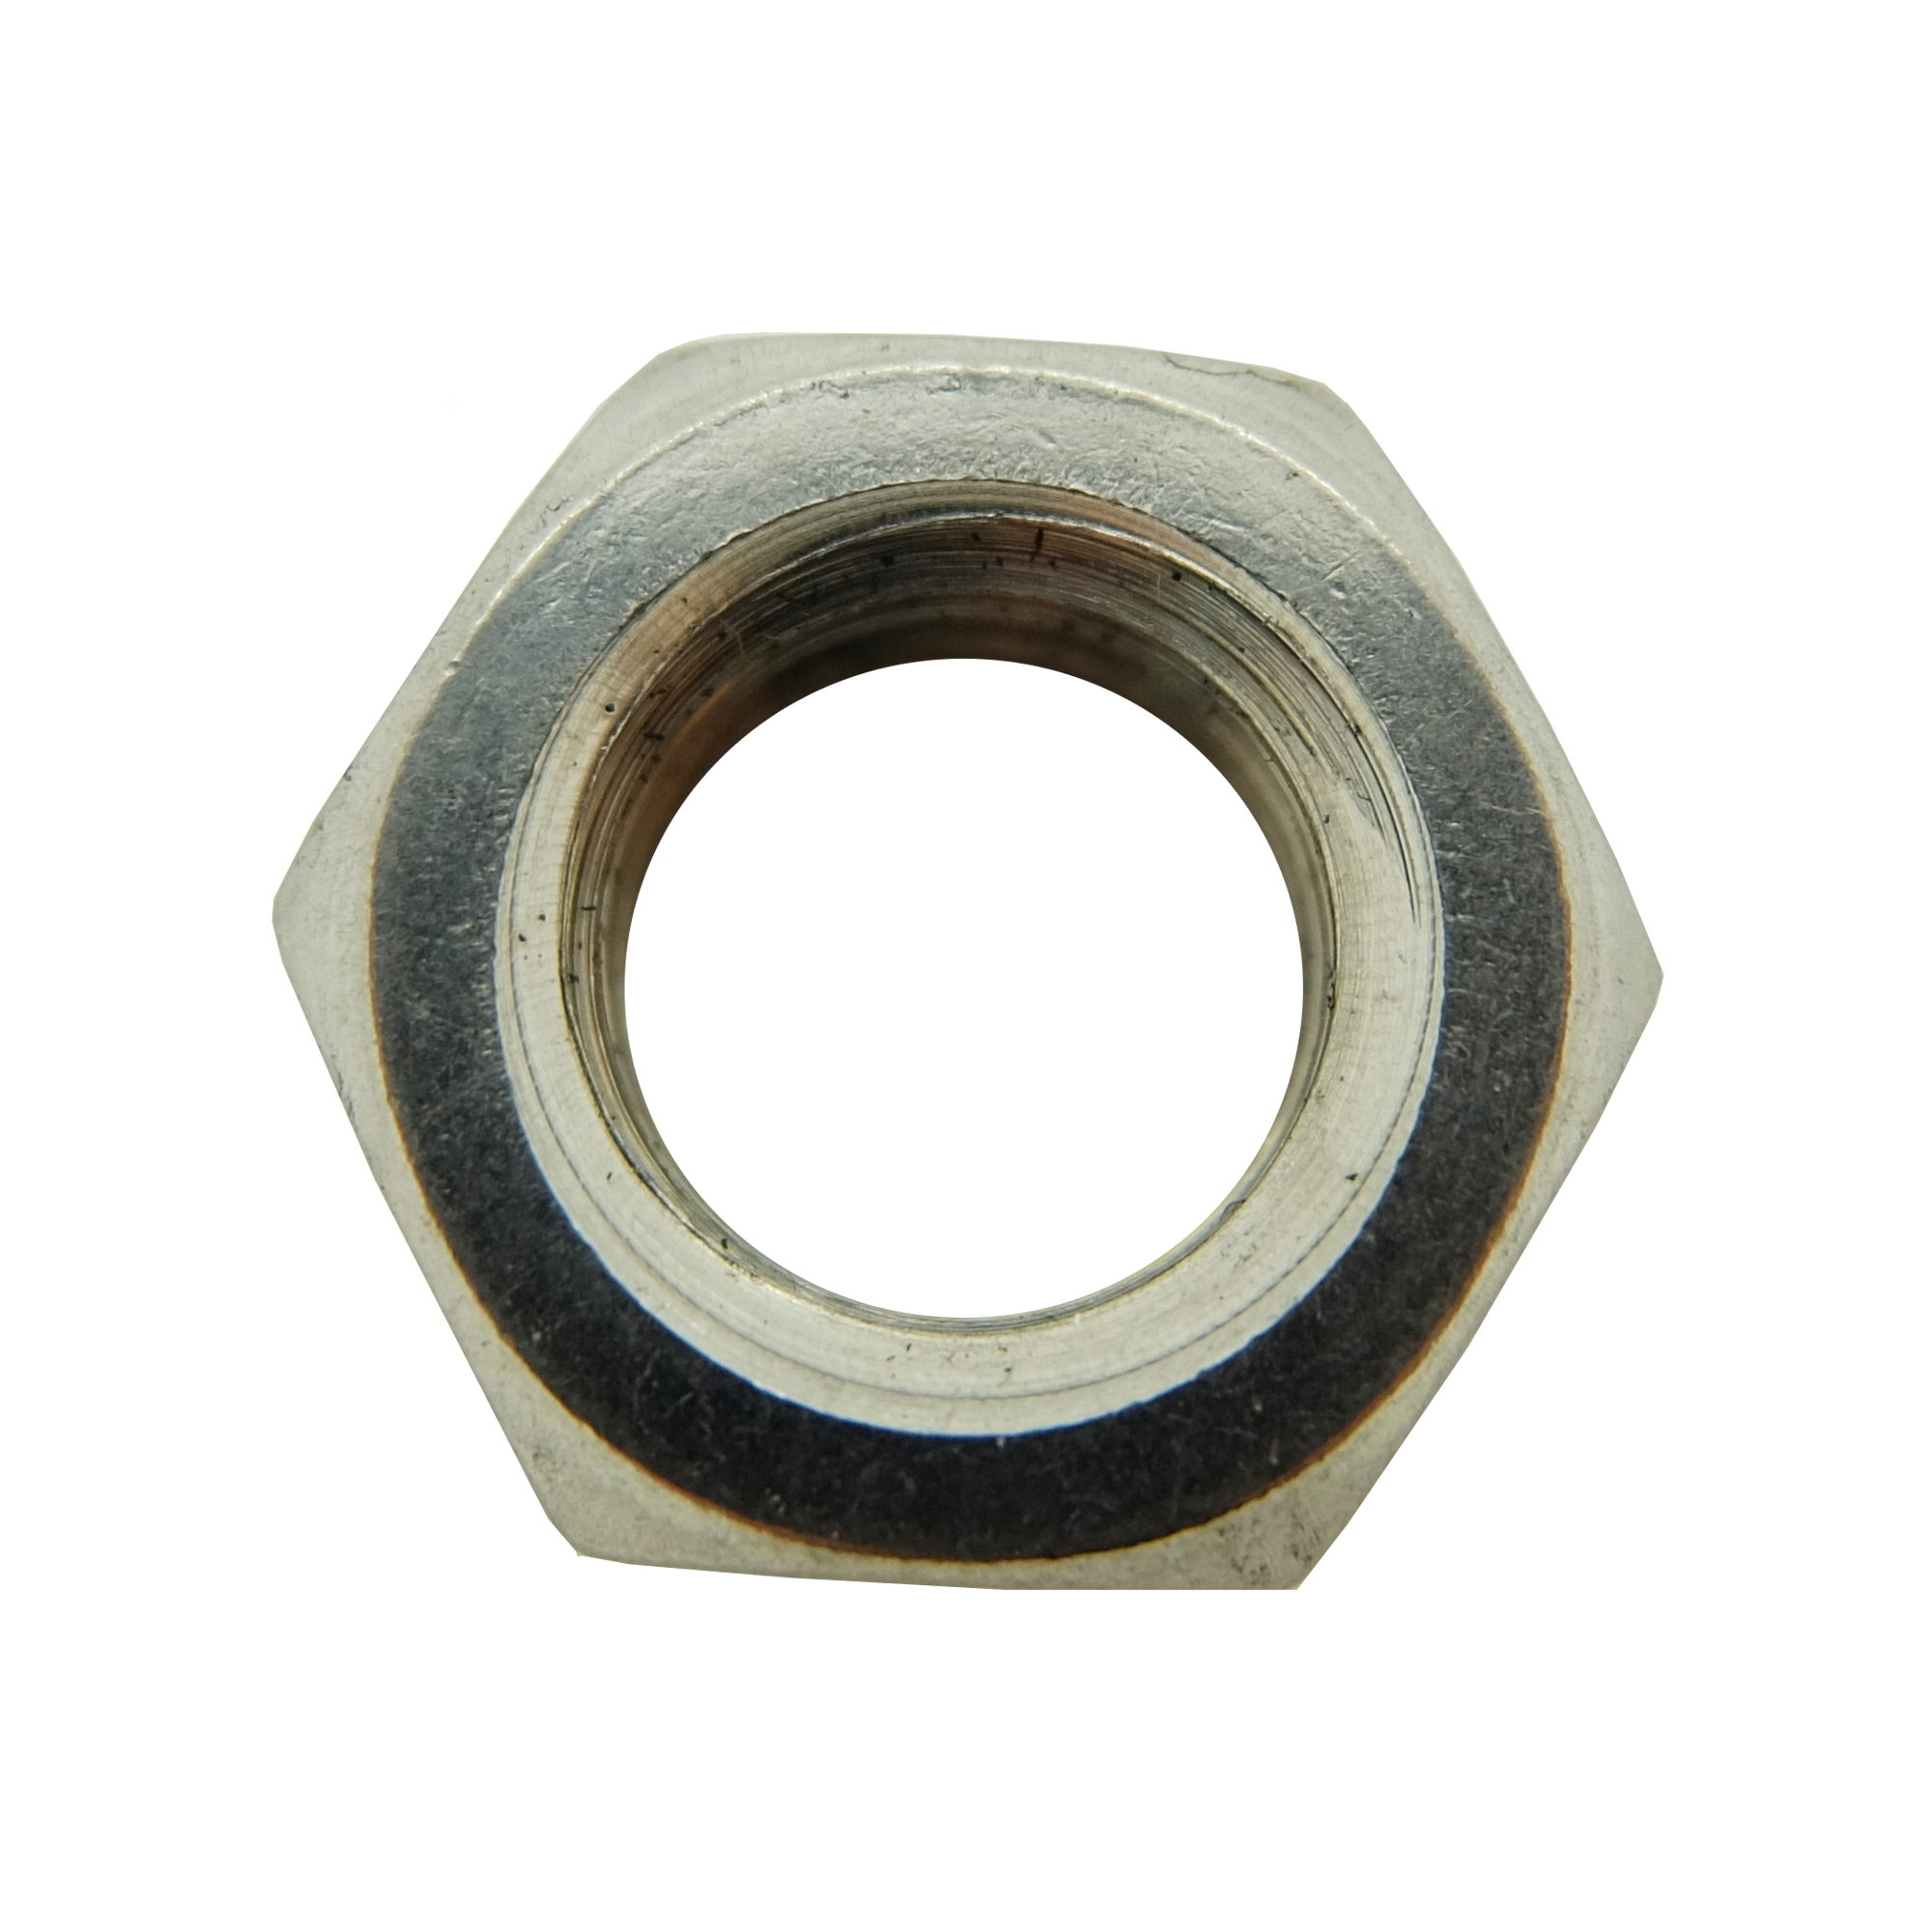 M8 LH Low Profile Stainless Steel Hexagon Nut